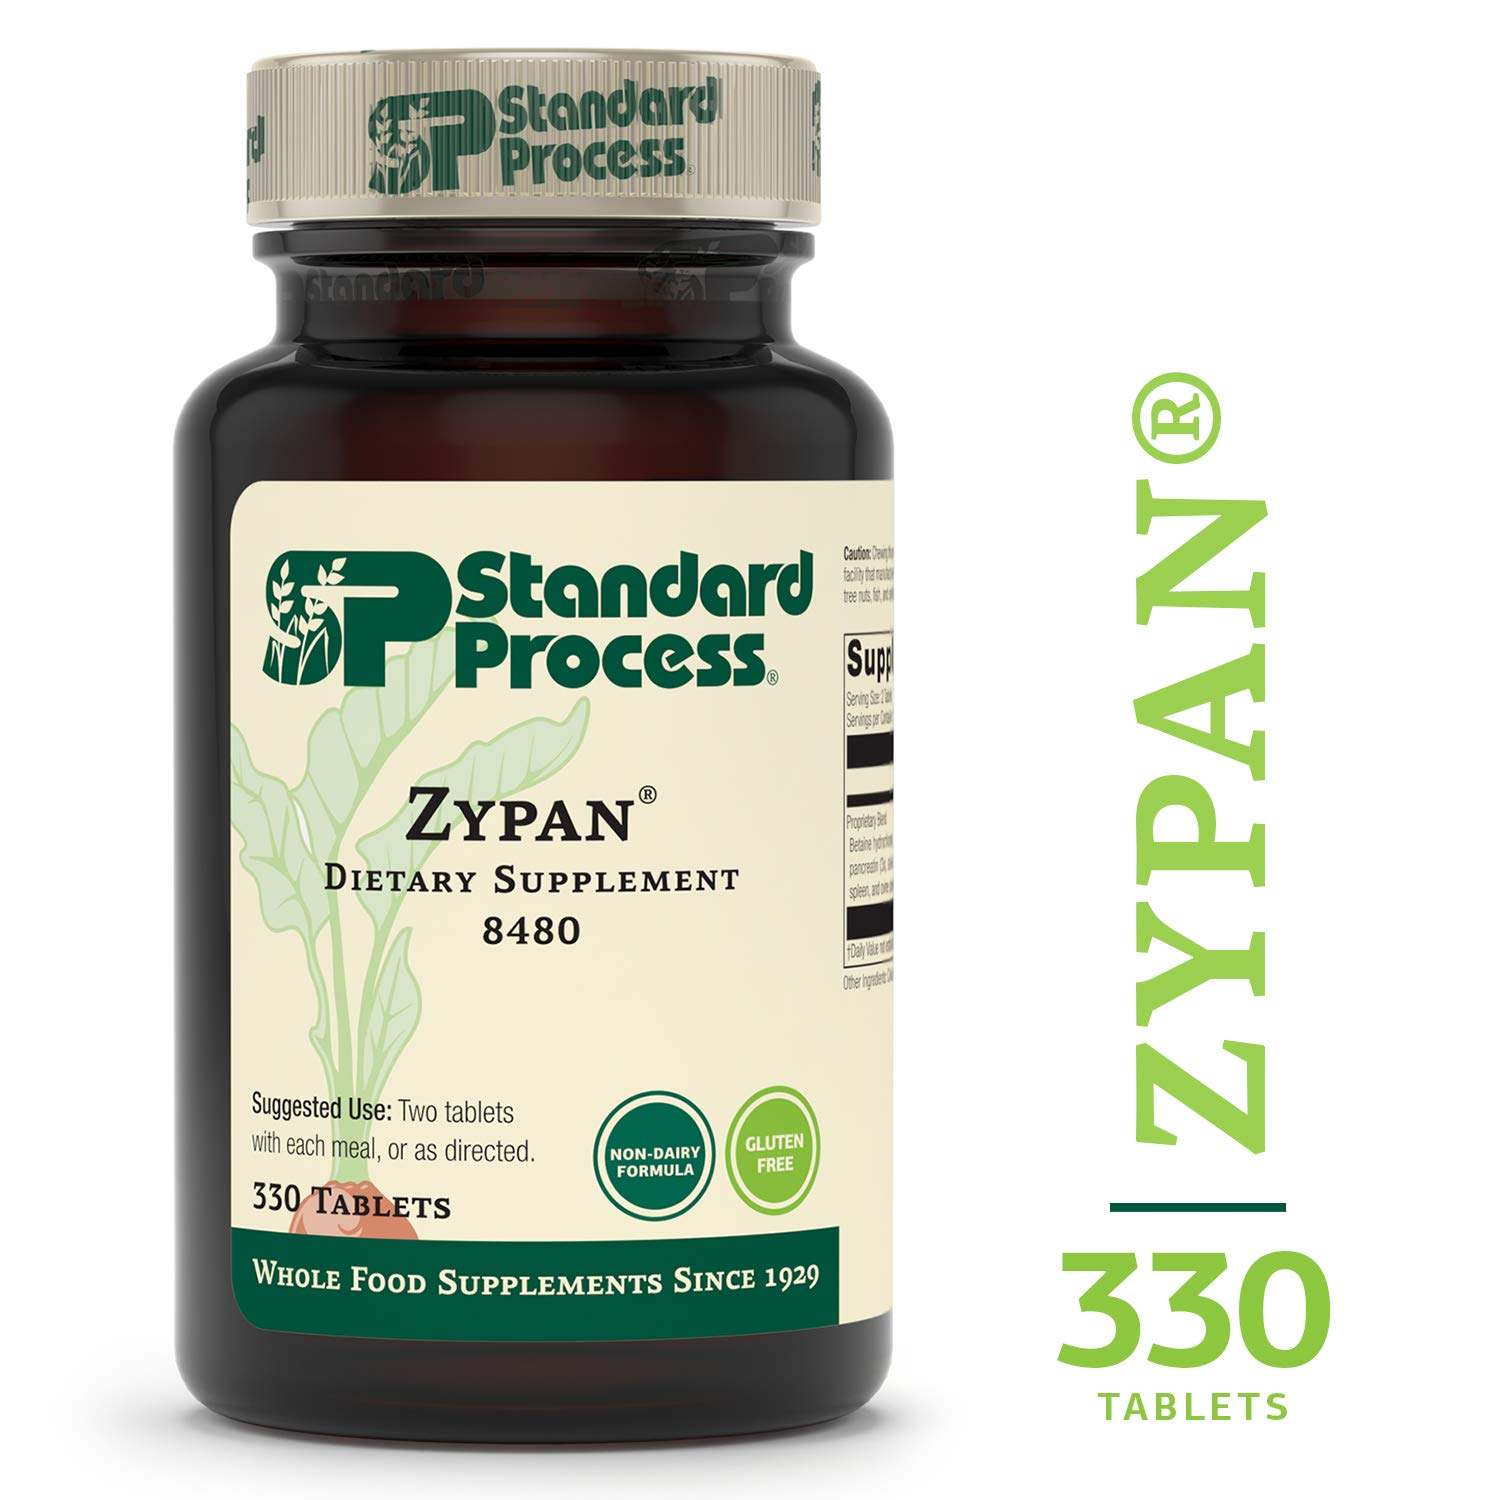 Standard Process - Zypan - Supports Healthy Digestion and Gastrointestinal pH, Enzymatic Support for Protein Digestion, Provides Pancreatin, Pepsin, Betaine Hydrochloride, Gluten Free - 330 Tablets by Standard Process